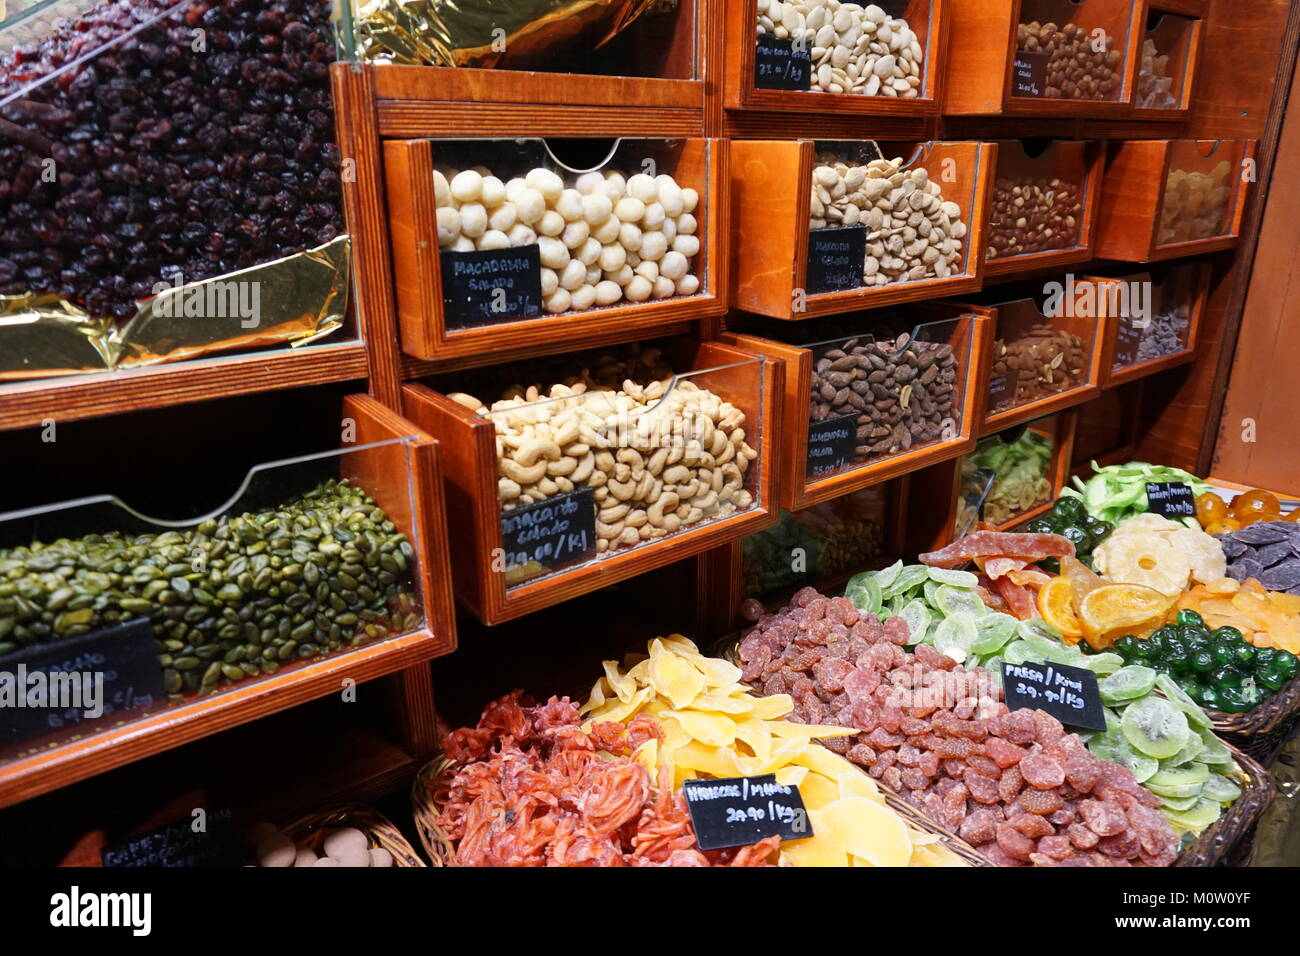 Barcelona Spain food Market  Mercat de la Boqueria - Stock Image